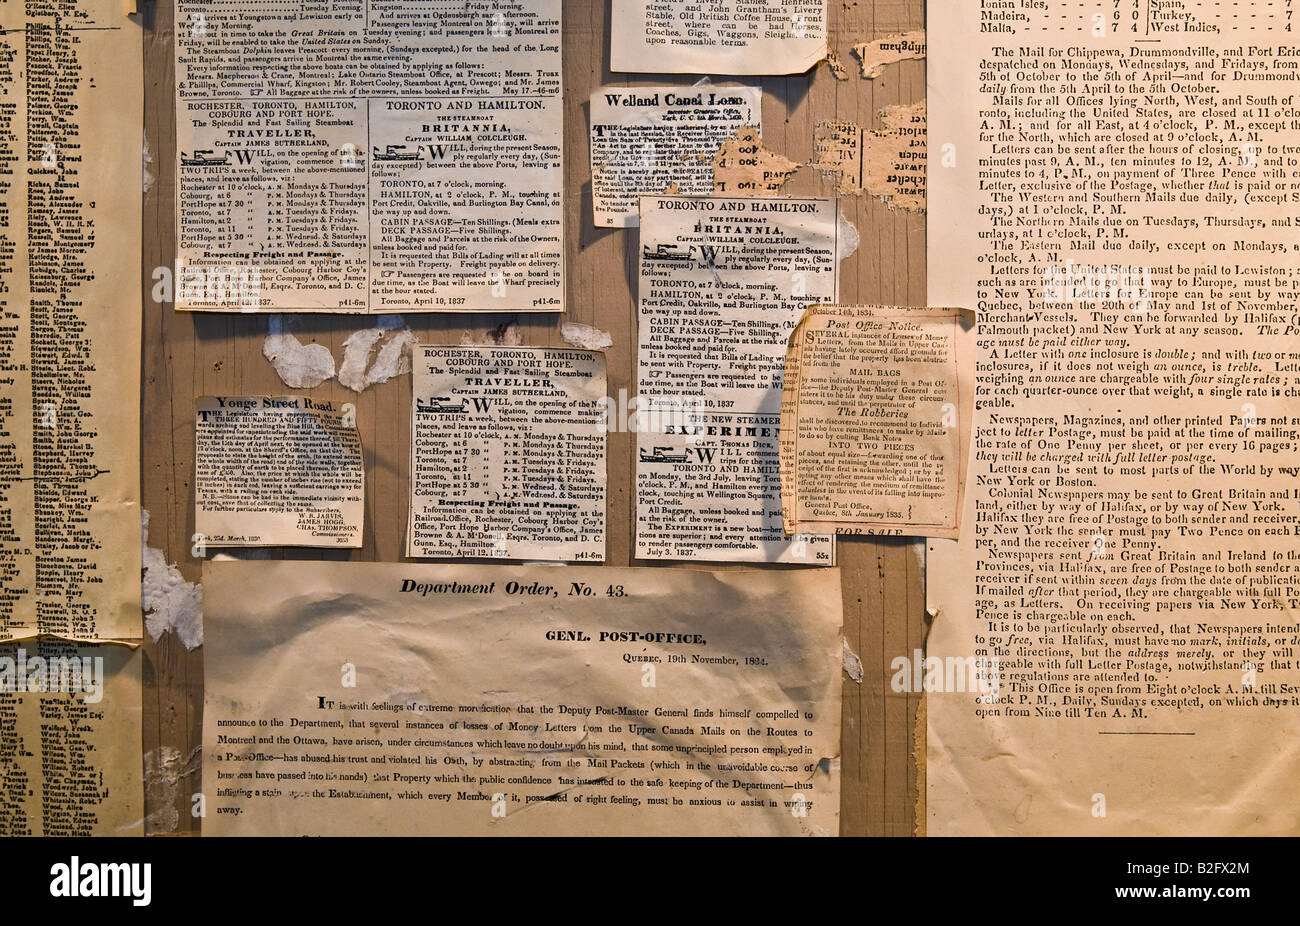 19th century newspaper clippings classified ads and articles - Stock Image